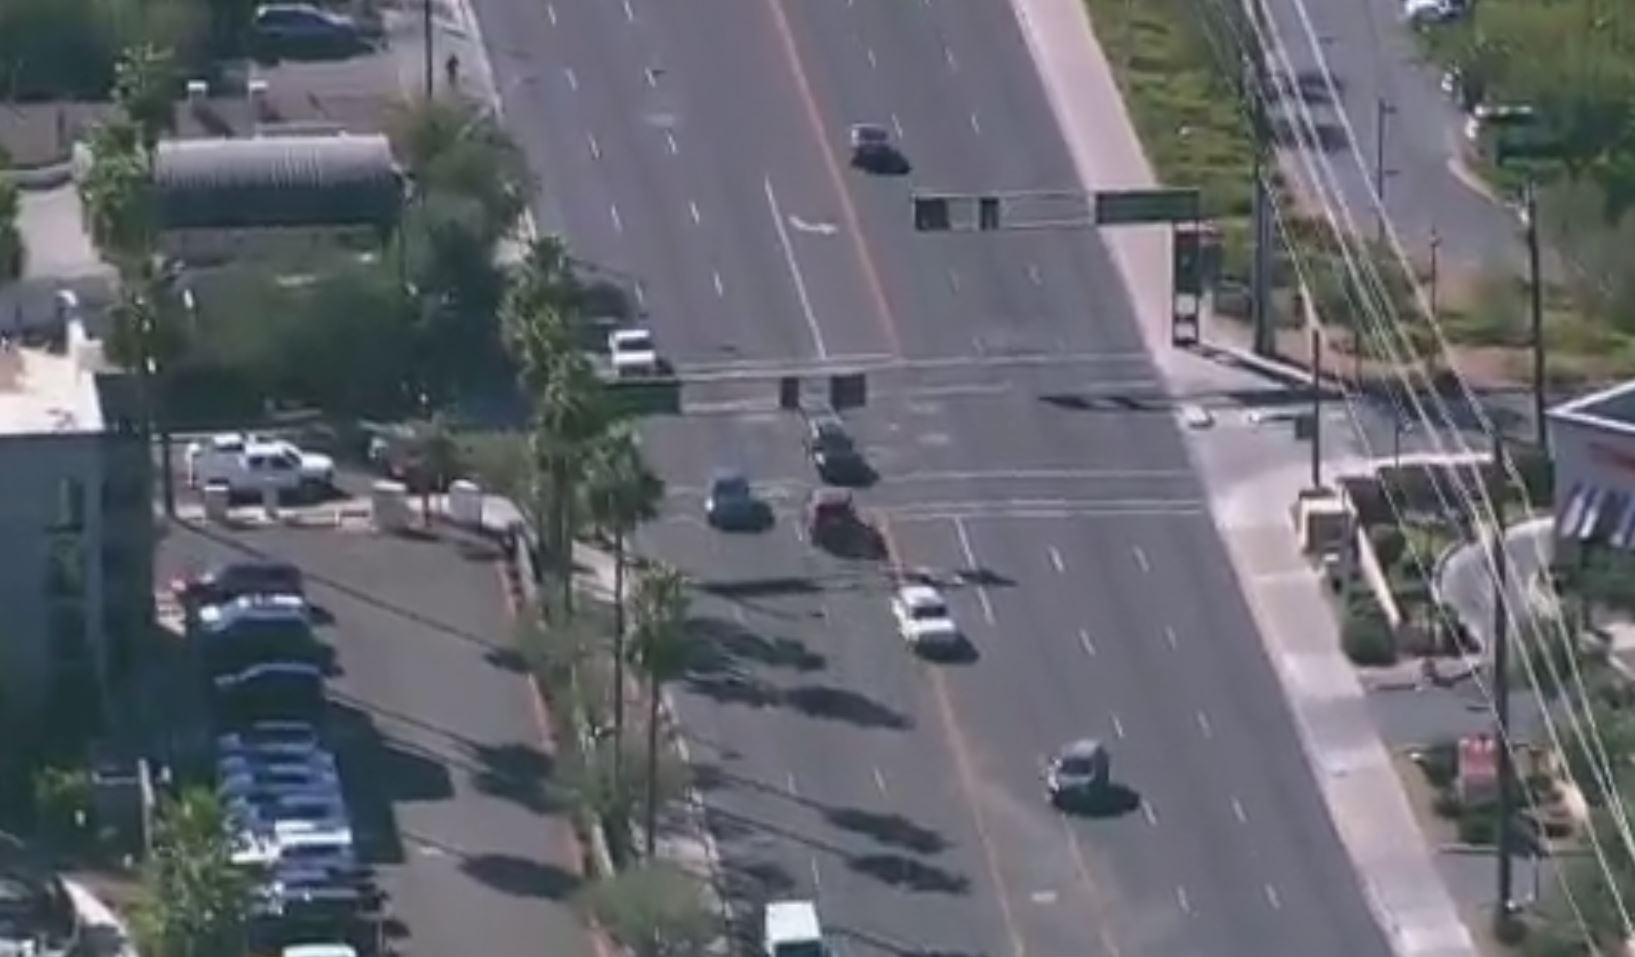 Police chase in Arizona ends in violent head-on crash  (Video: KPHO, KTVK / CNN Newsource)